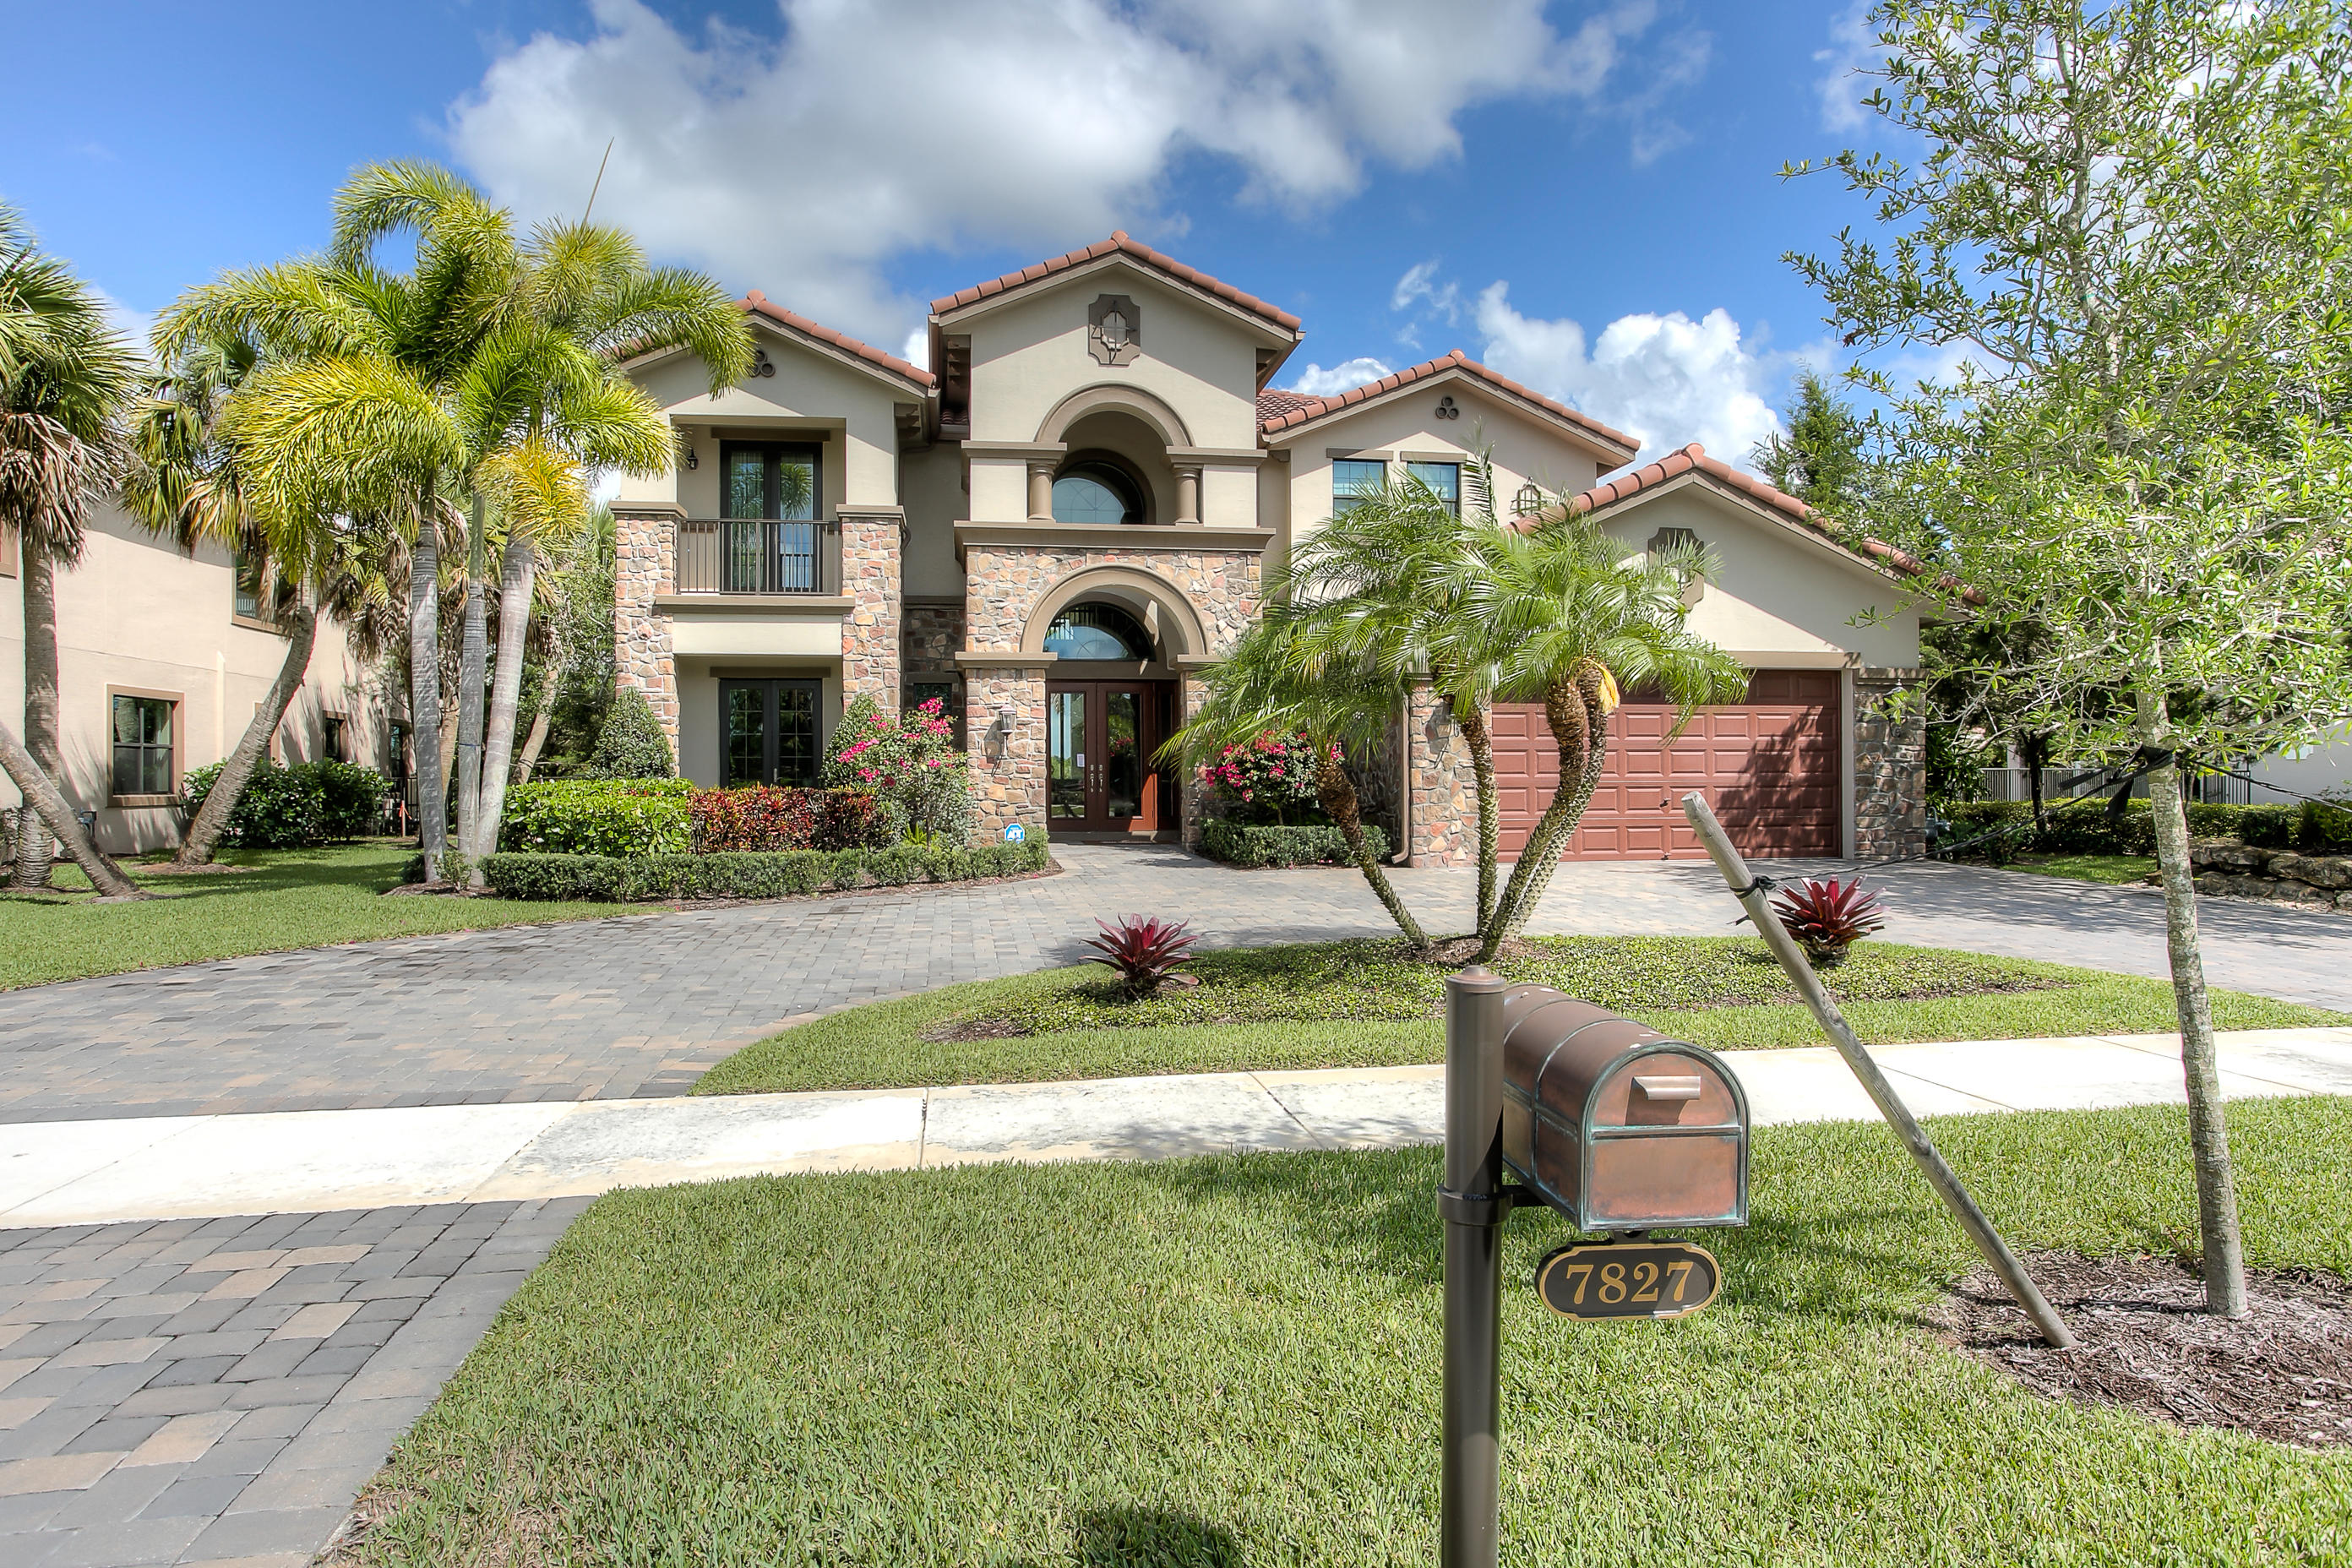 Photo of 7827 Blue Sage Way, Parkland, FL 33076